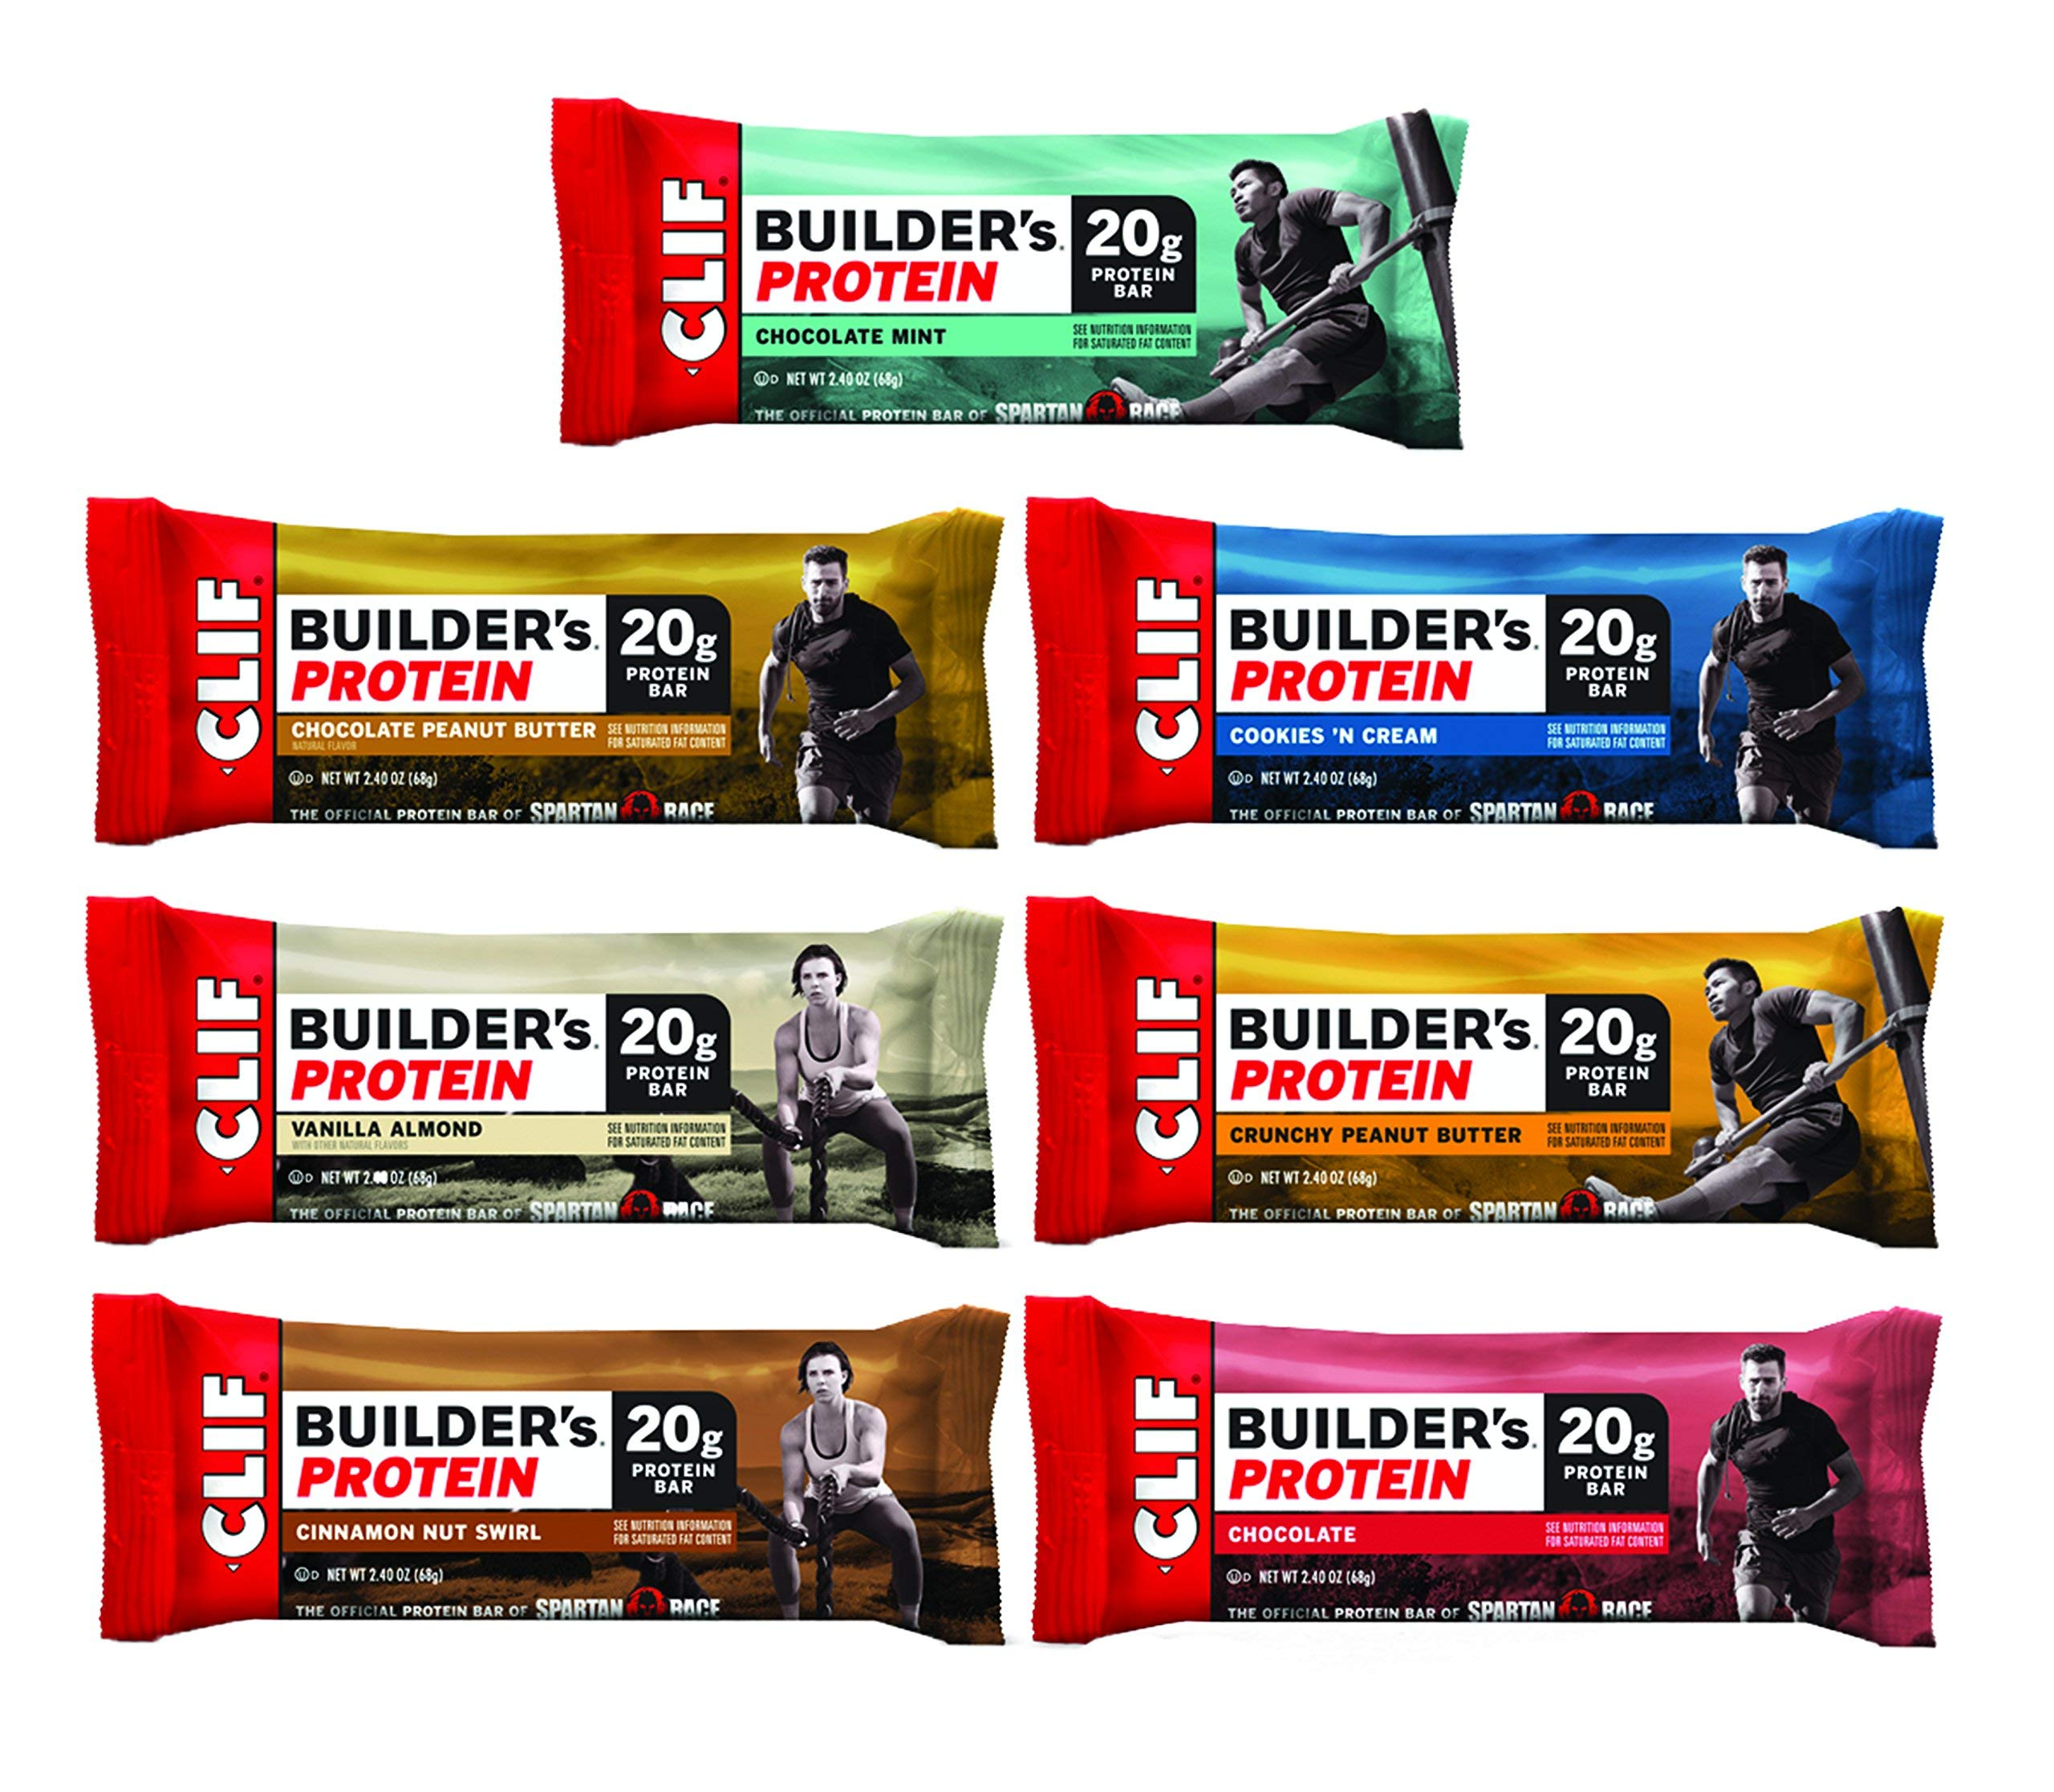 Clif Builder's - Protein bar - 7-Flavor Variety Pack - (2.4 oz Non-GMO bar, 14Count) by Clif Builder's